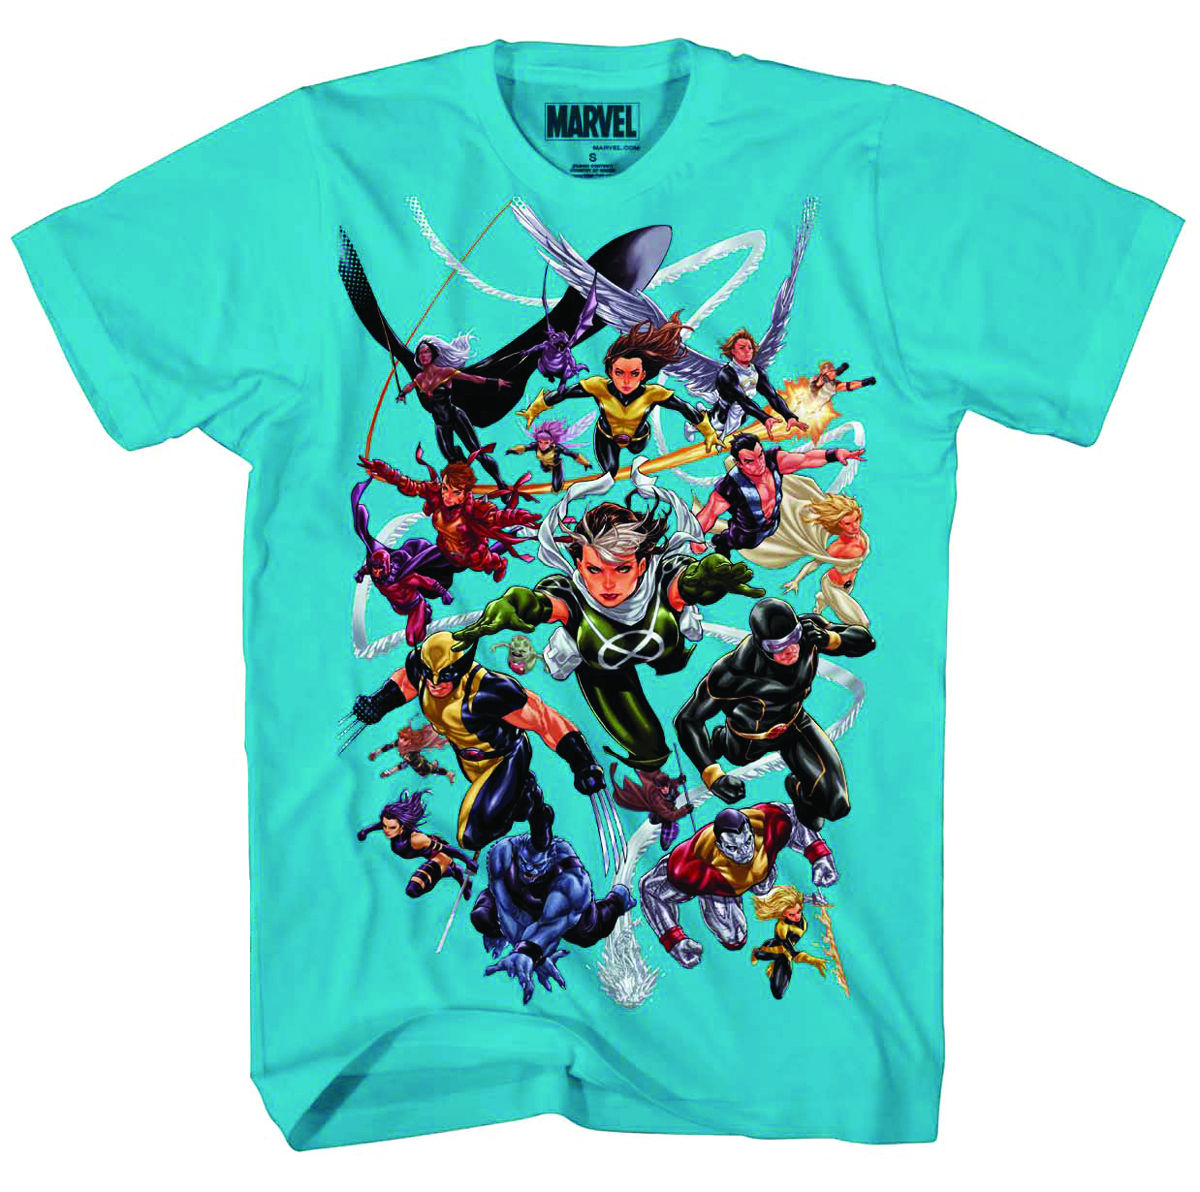 X-MEN FLYING FORWARD PX TURQ T/S LG